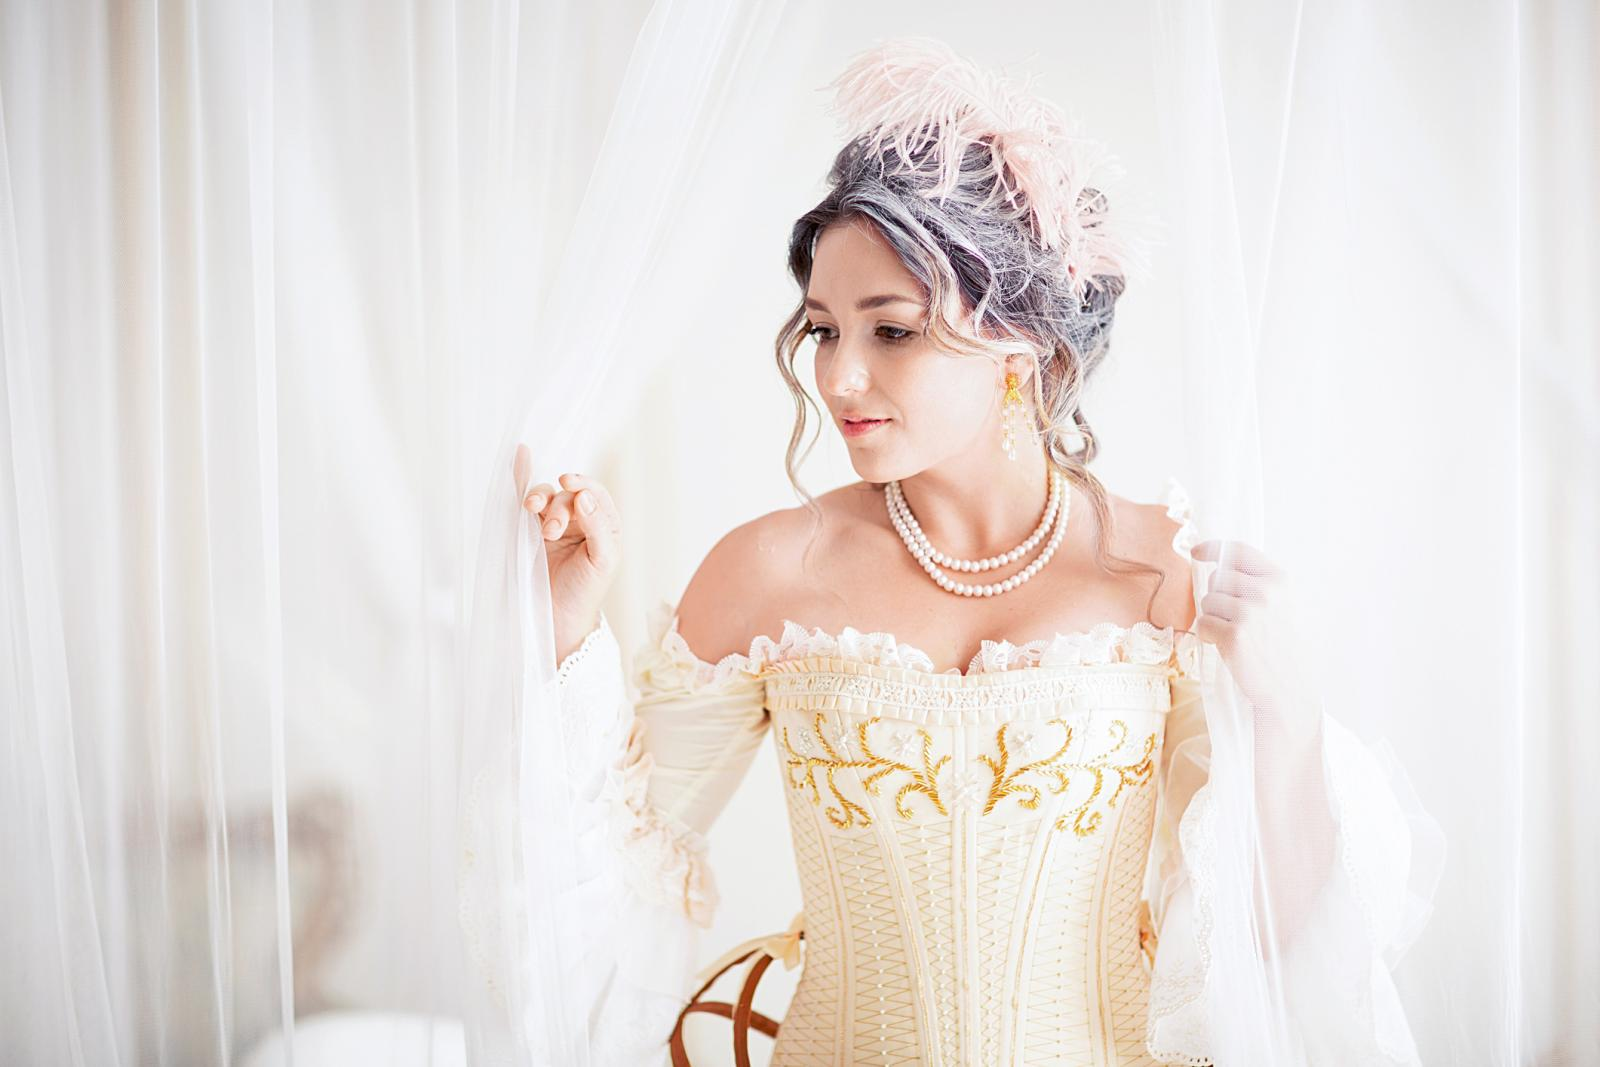 A greyhead woman with a beautiful luxurious rococo hair style in a white dress